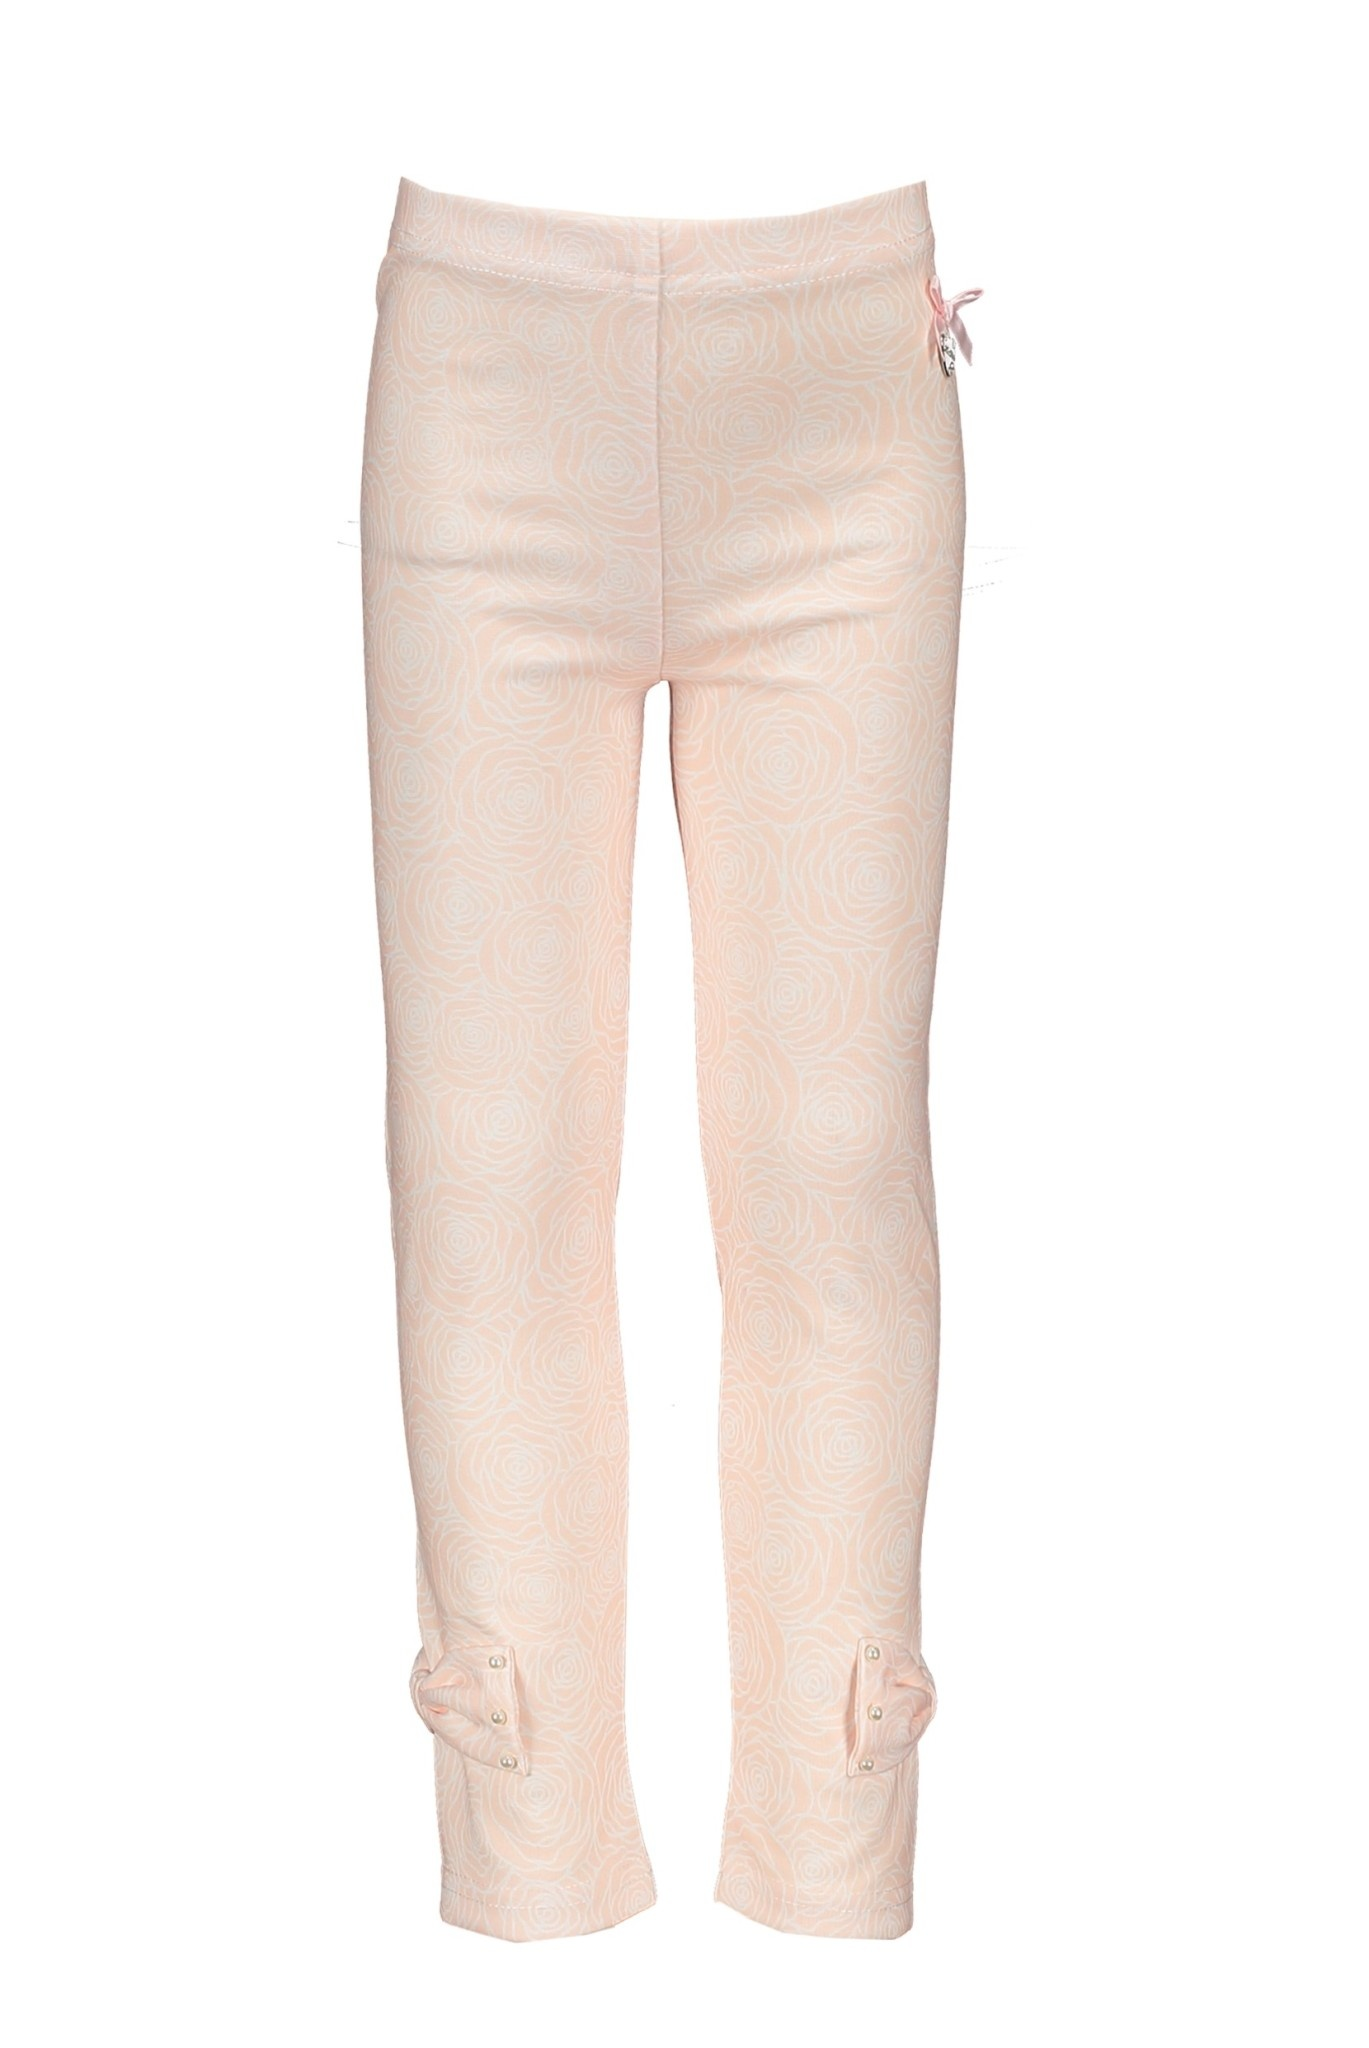 Lechic Le Chic Field Of Roses Legging 5520